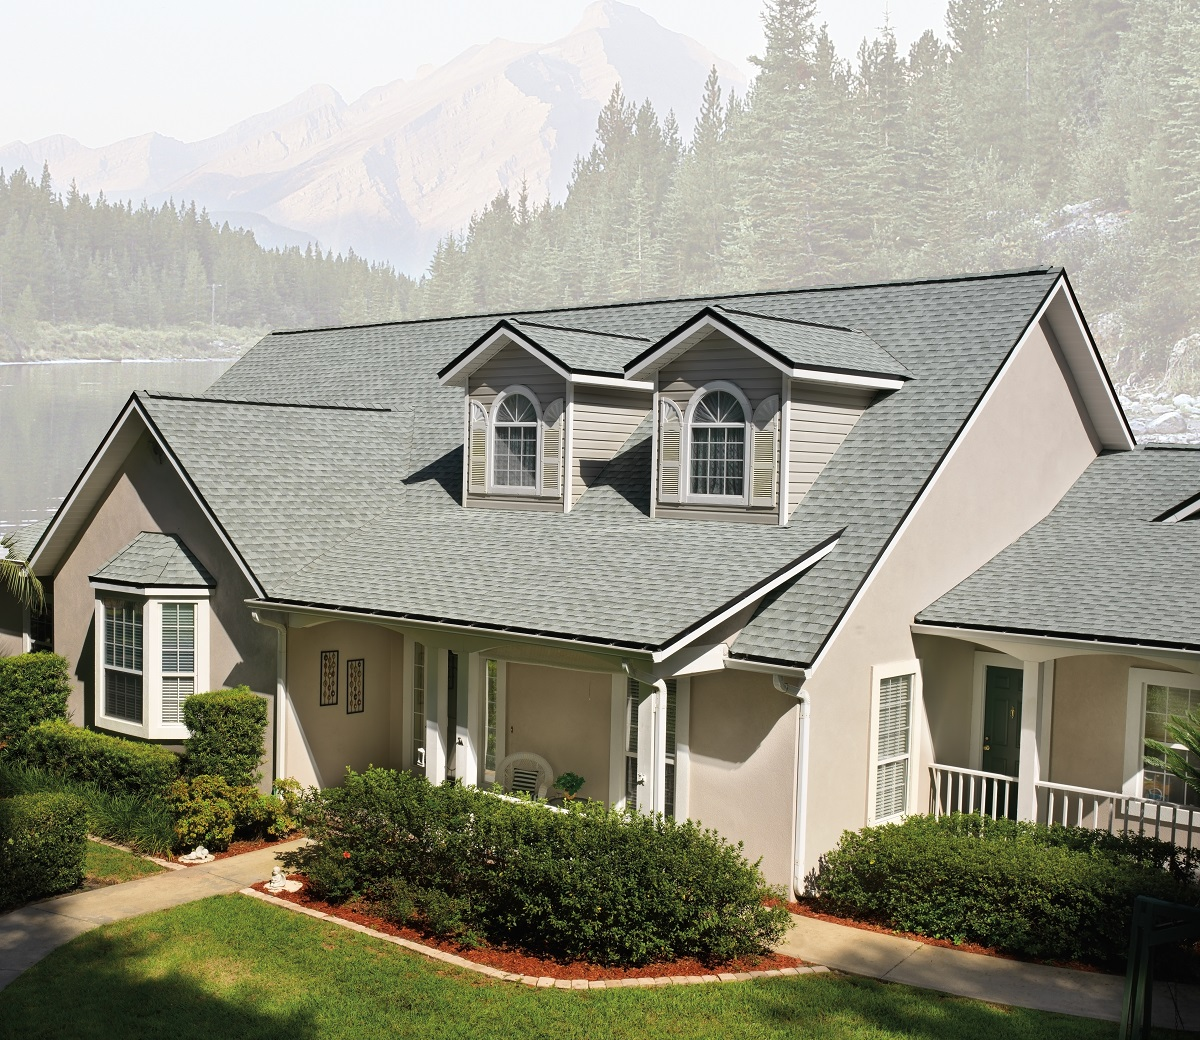 The Ultimate Guide To Getting A New Roof In 2019 Buying